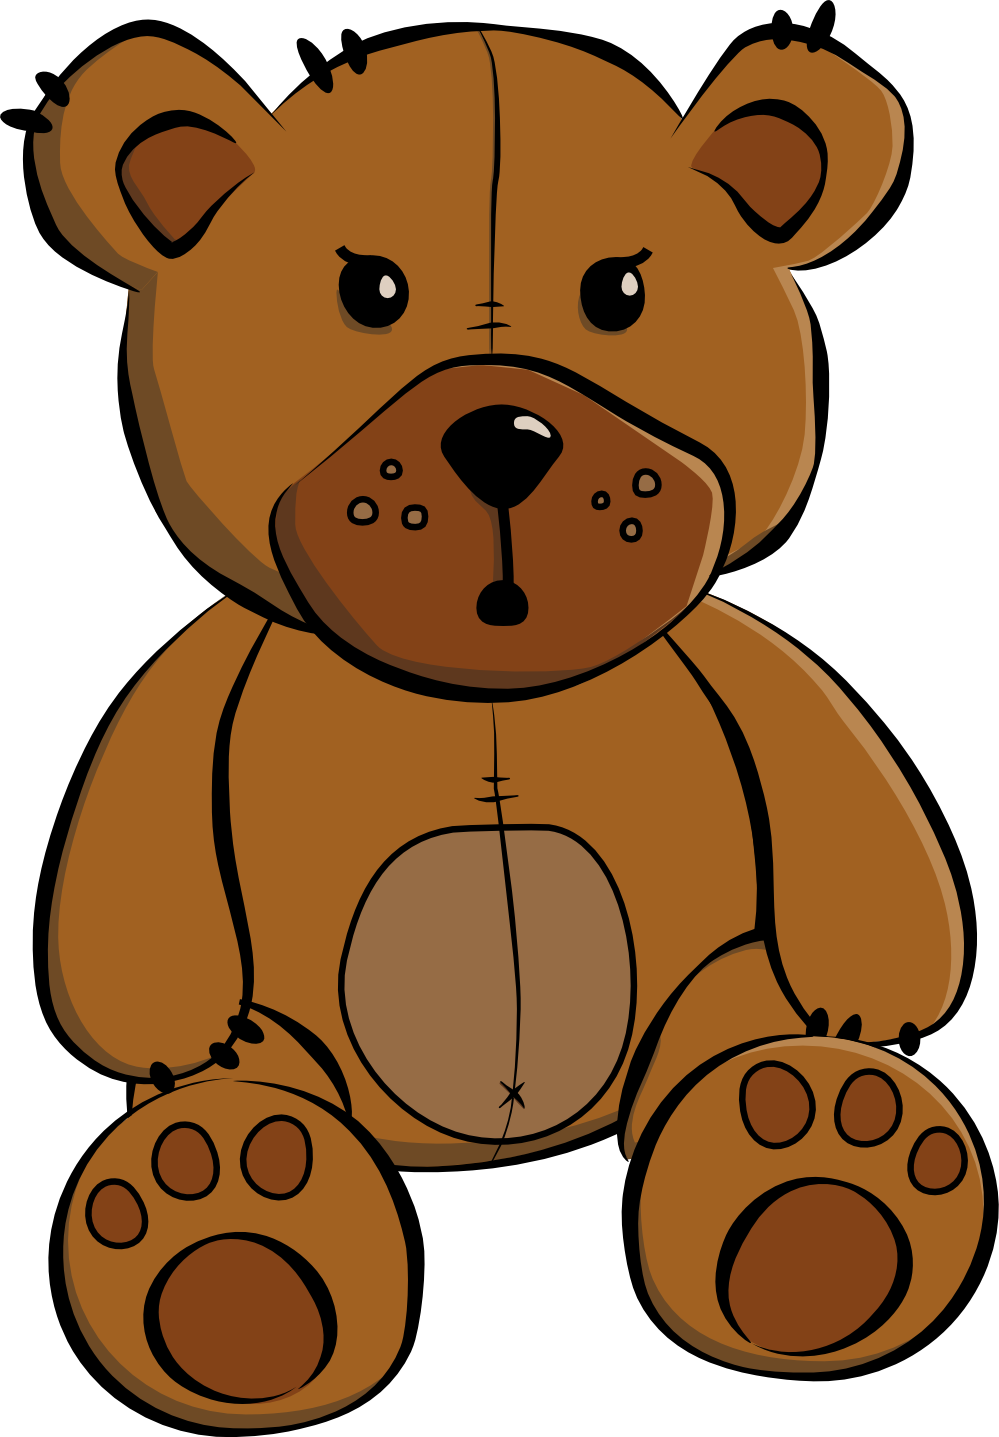 png freeuse Panda free clip art. Teddy bear images clipart